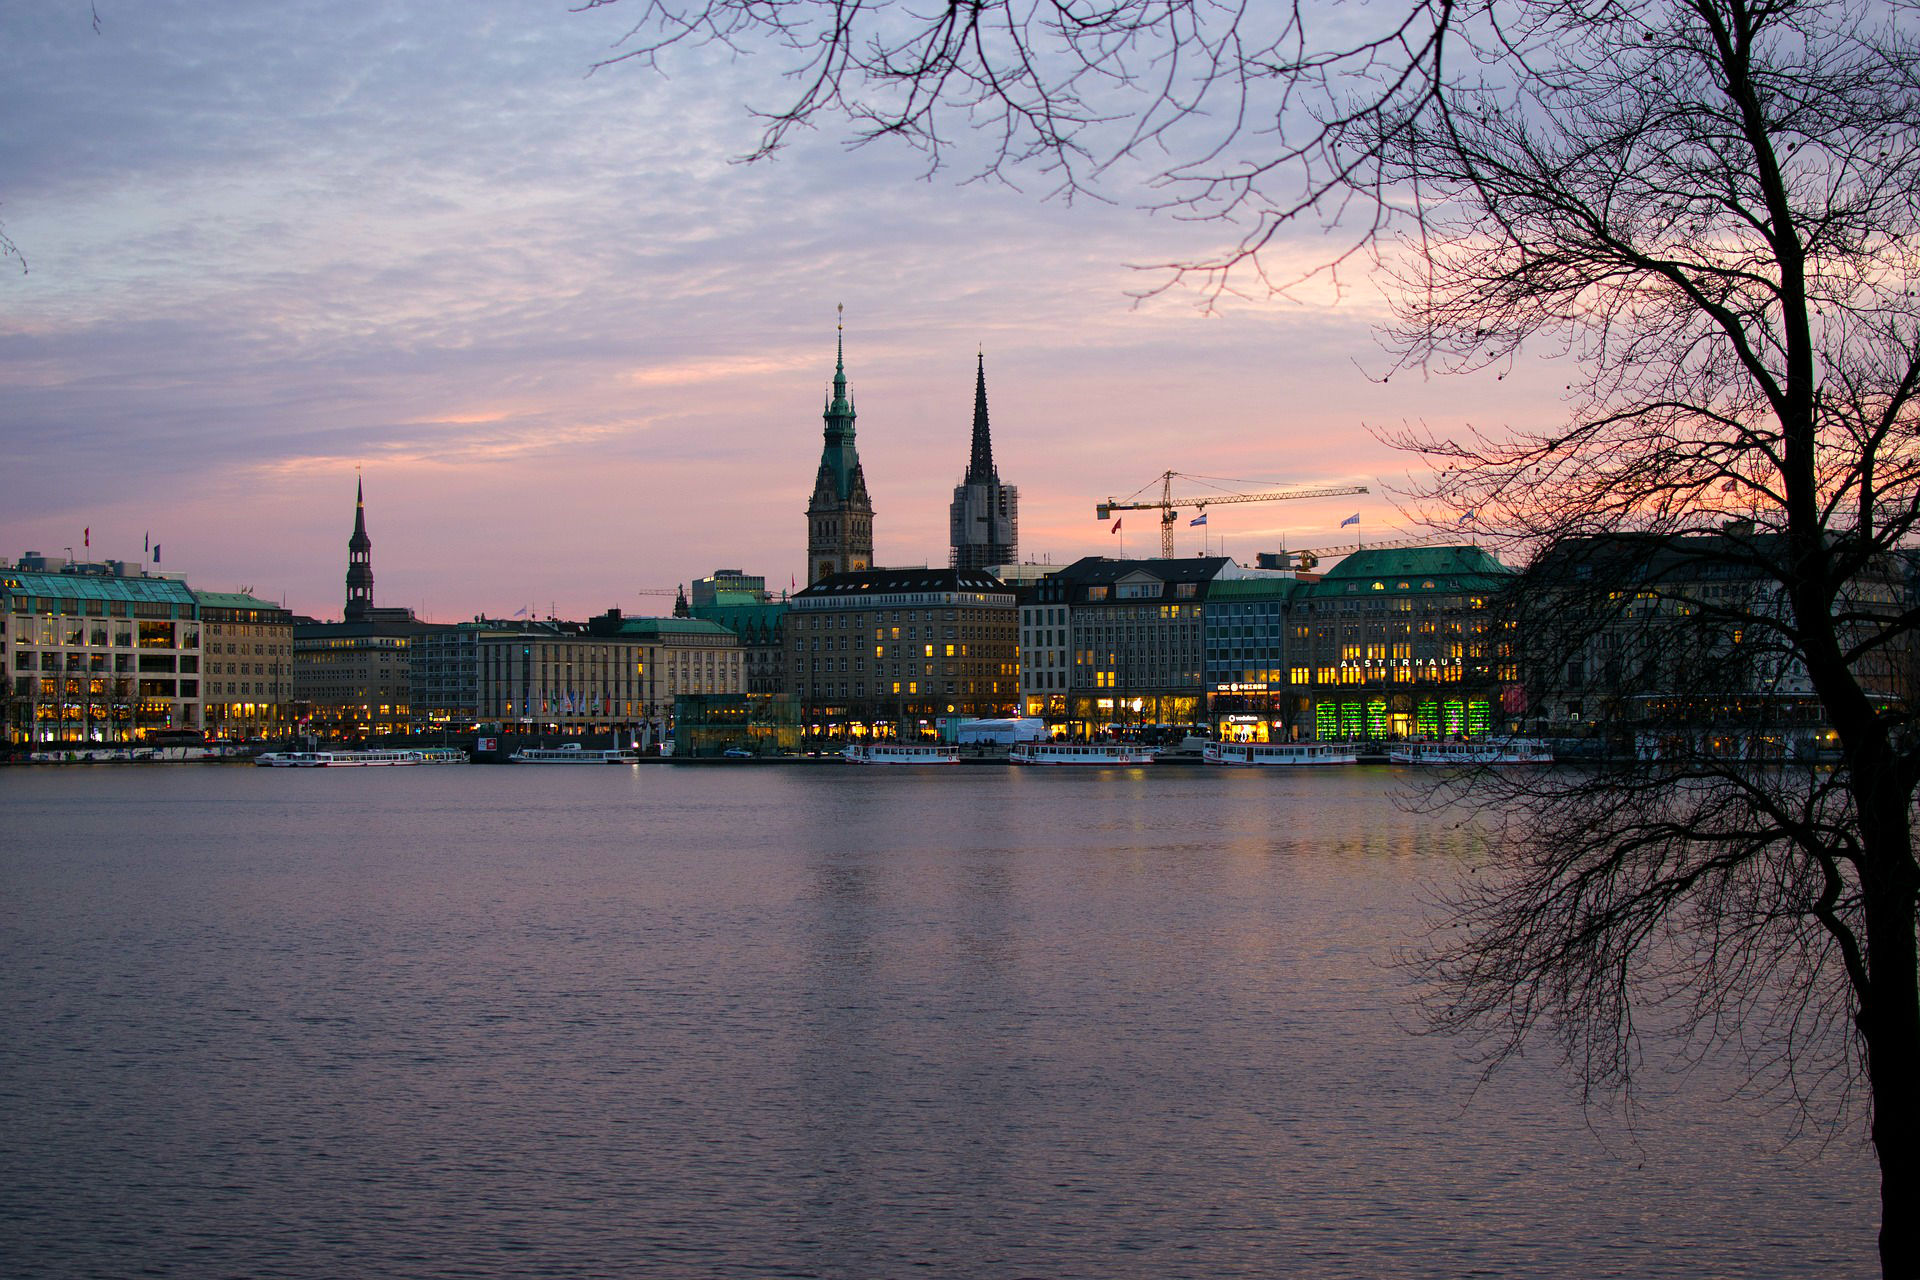 Hamburg at sunset